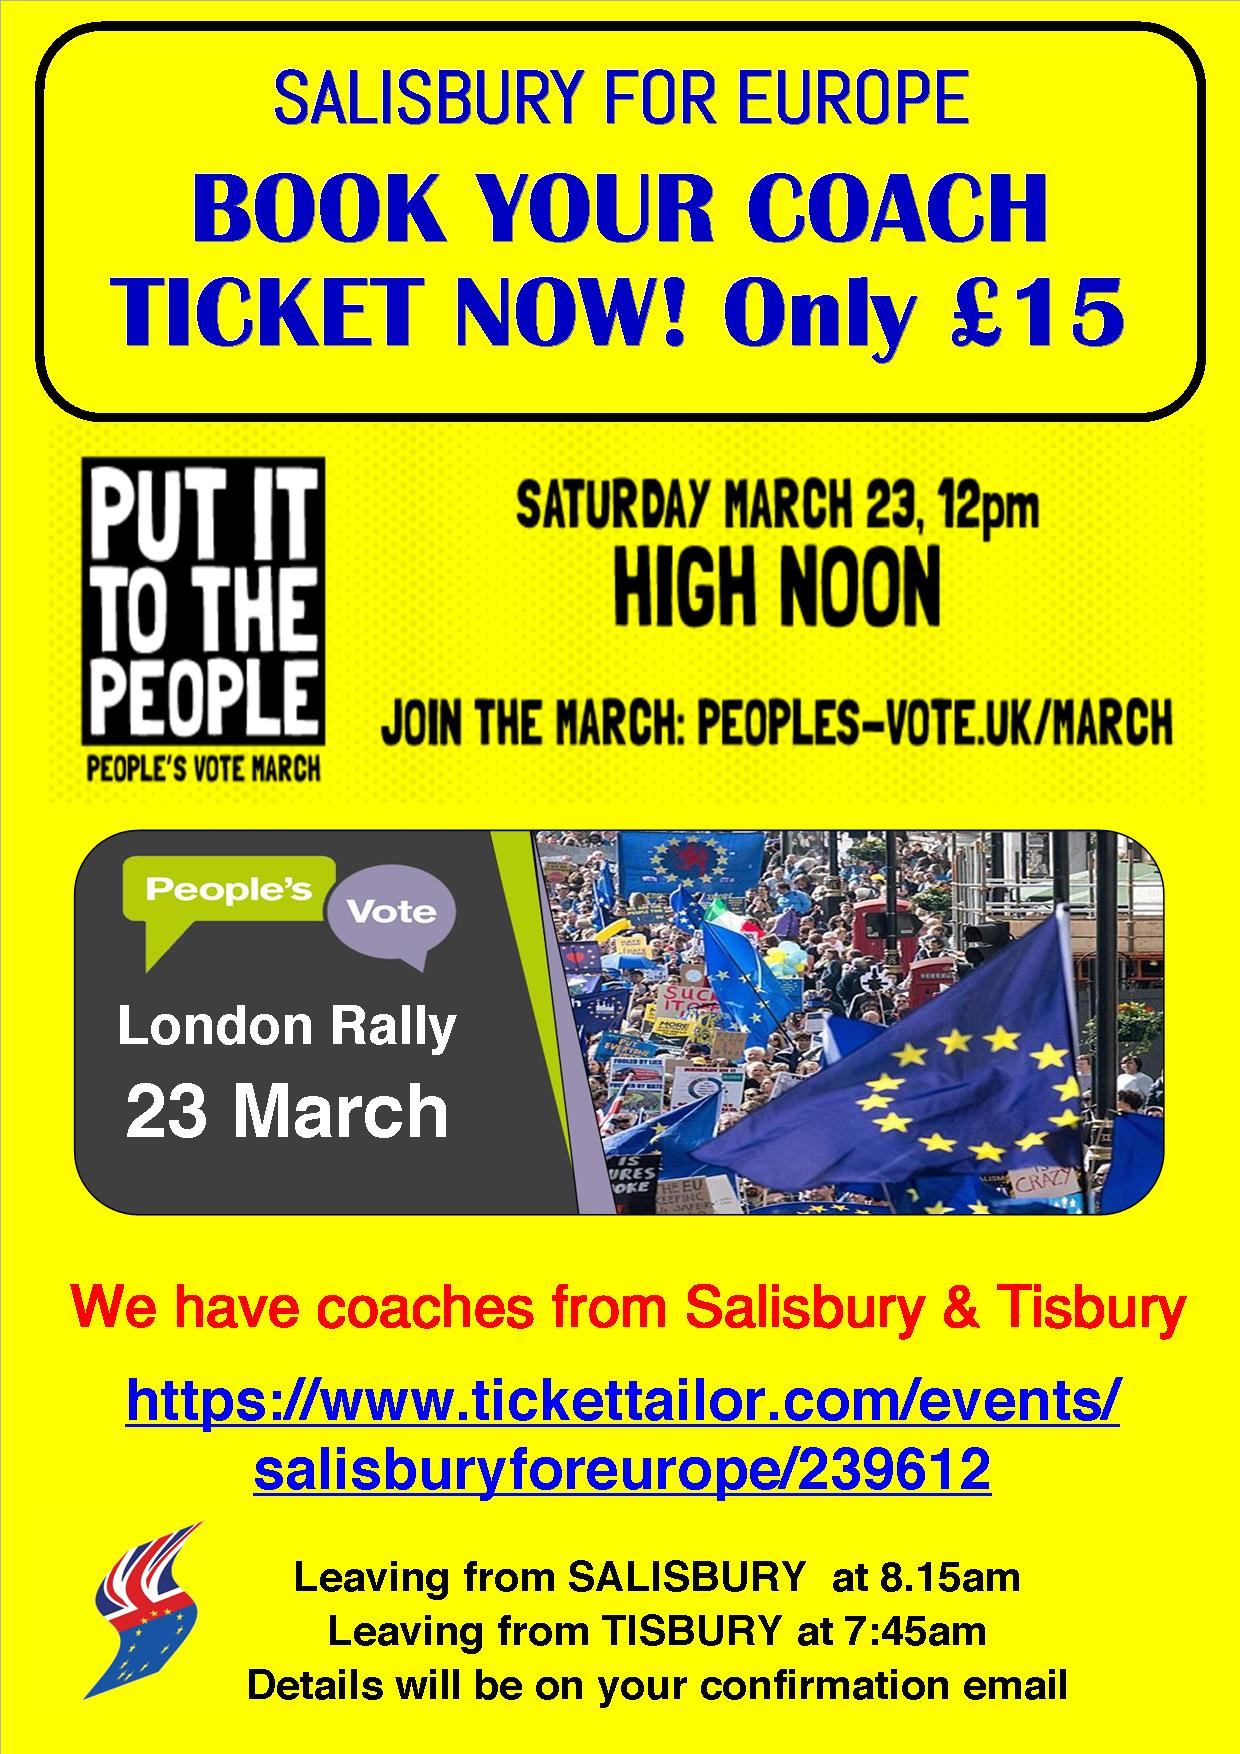 Coach travel with Salisbury for Europe to PEOPLE'S VOTE MARCH ON 23rd MARCH